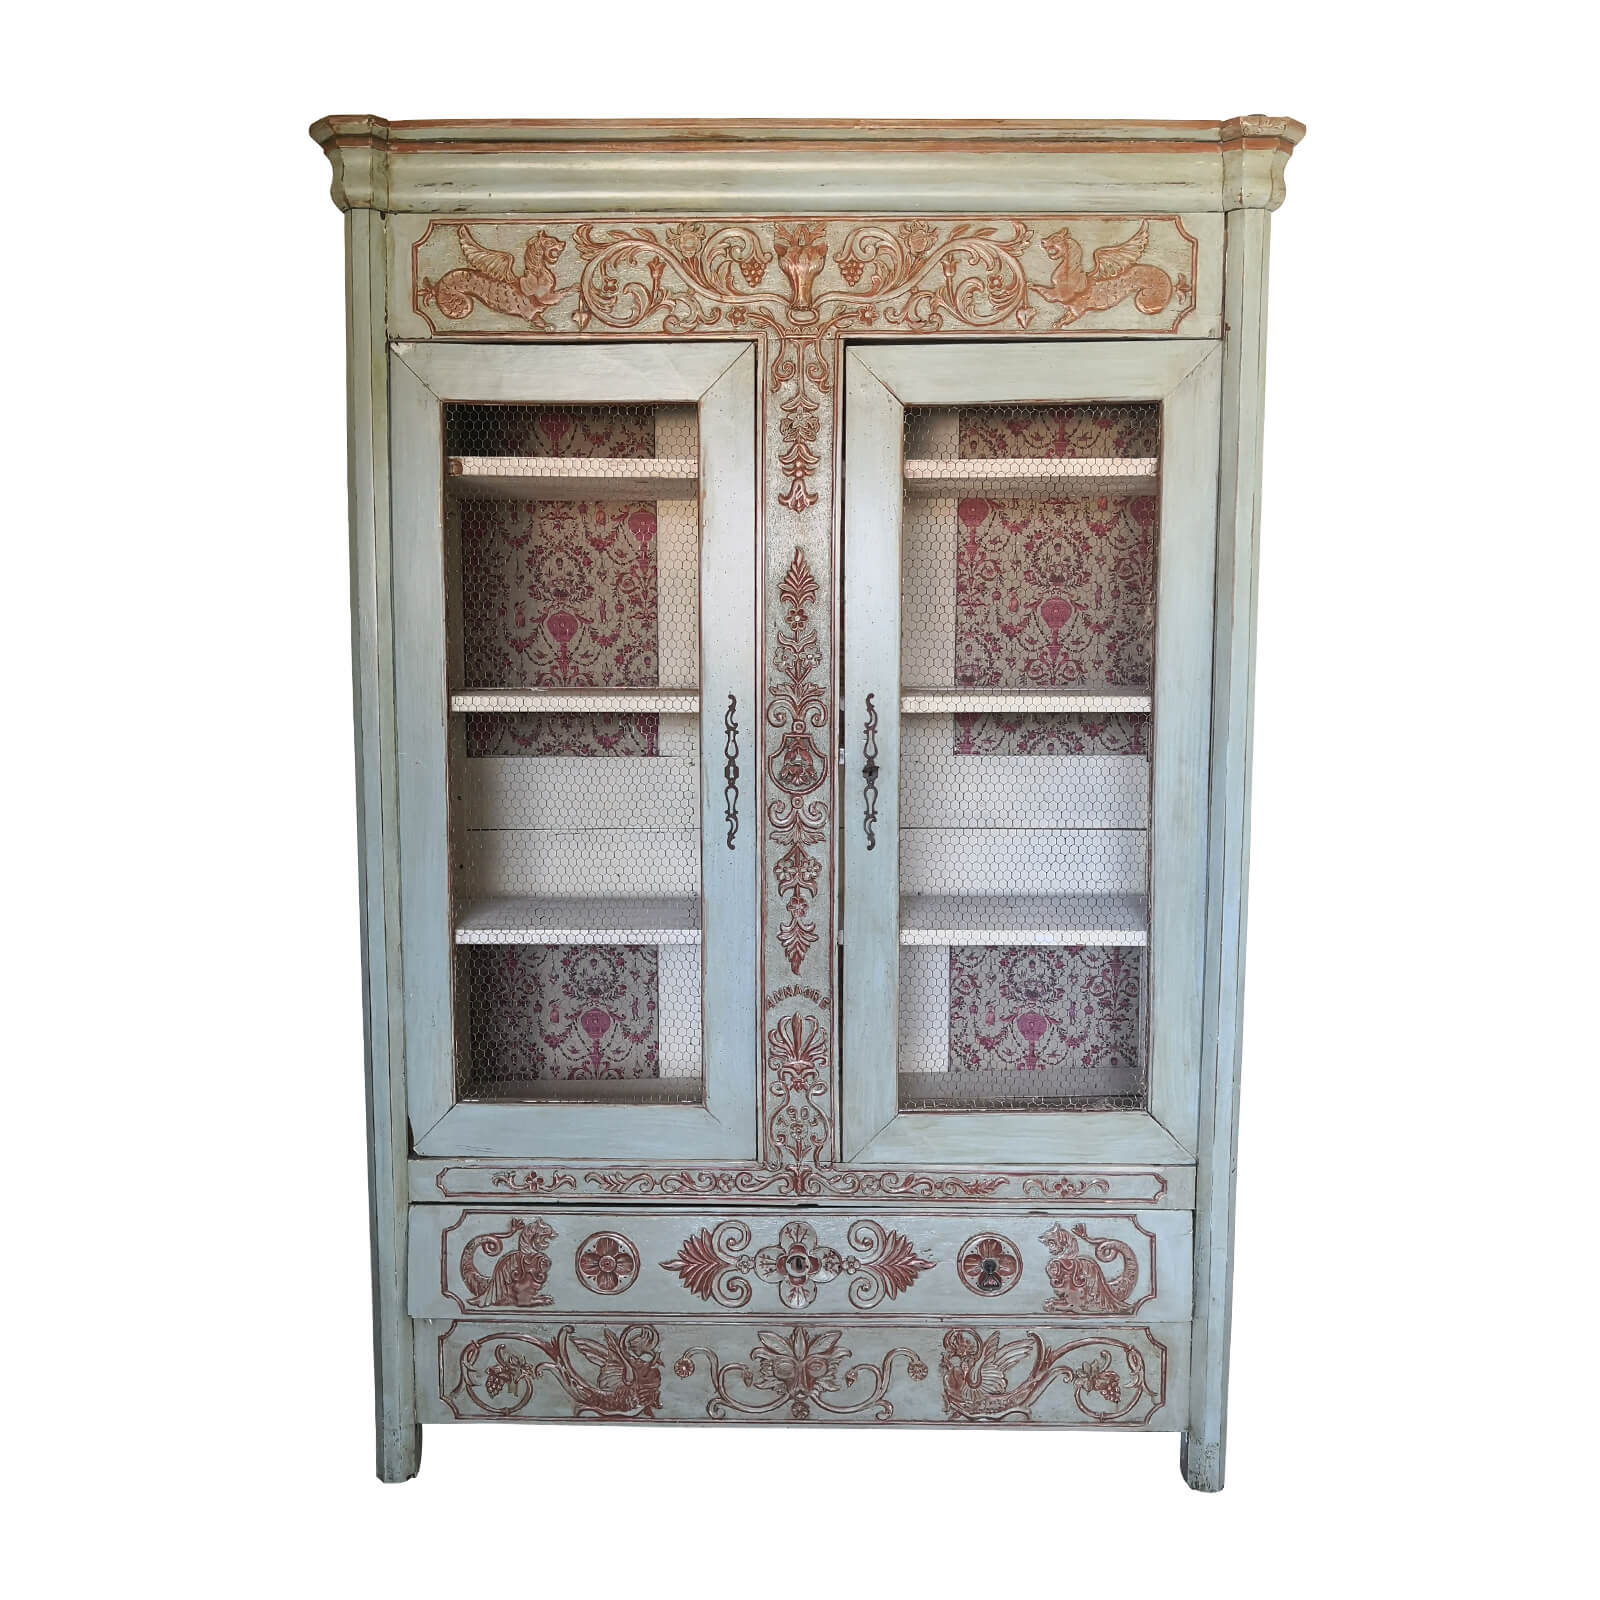 Two Design Lovers Antique French Armoire